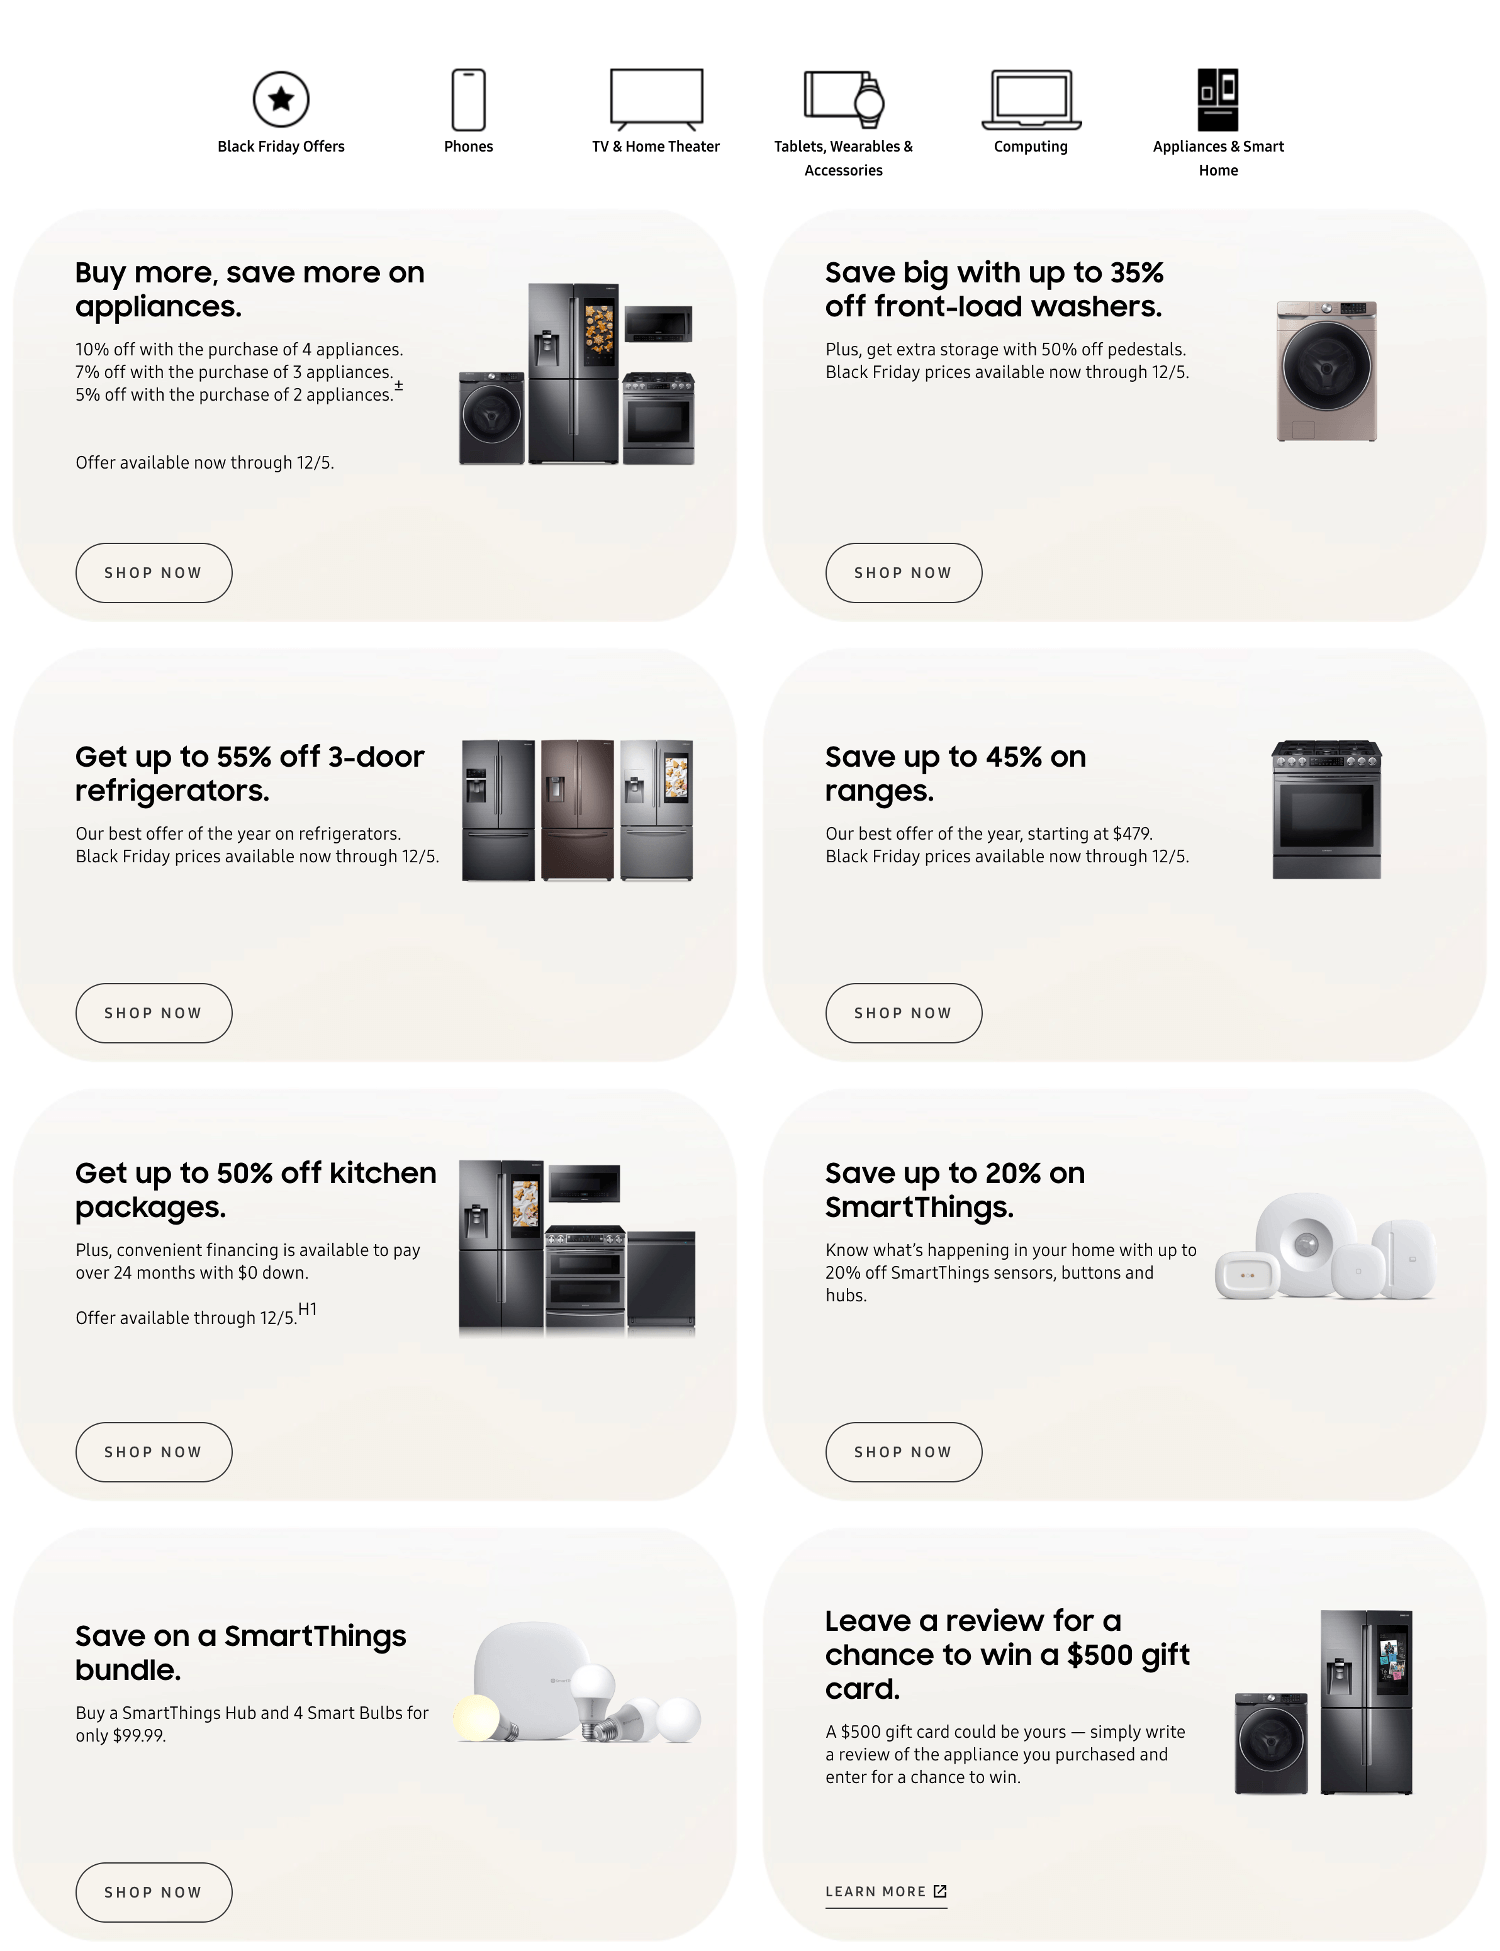 Samsung Black Friday 2019 Page 5